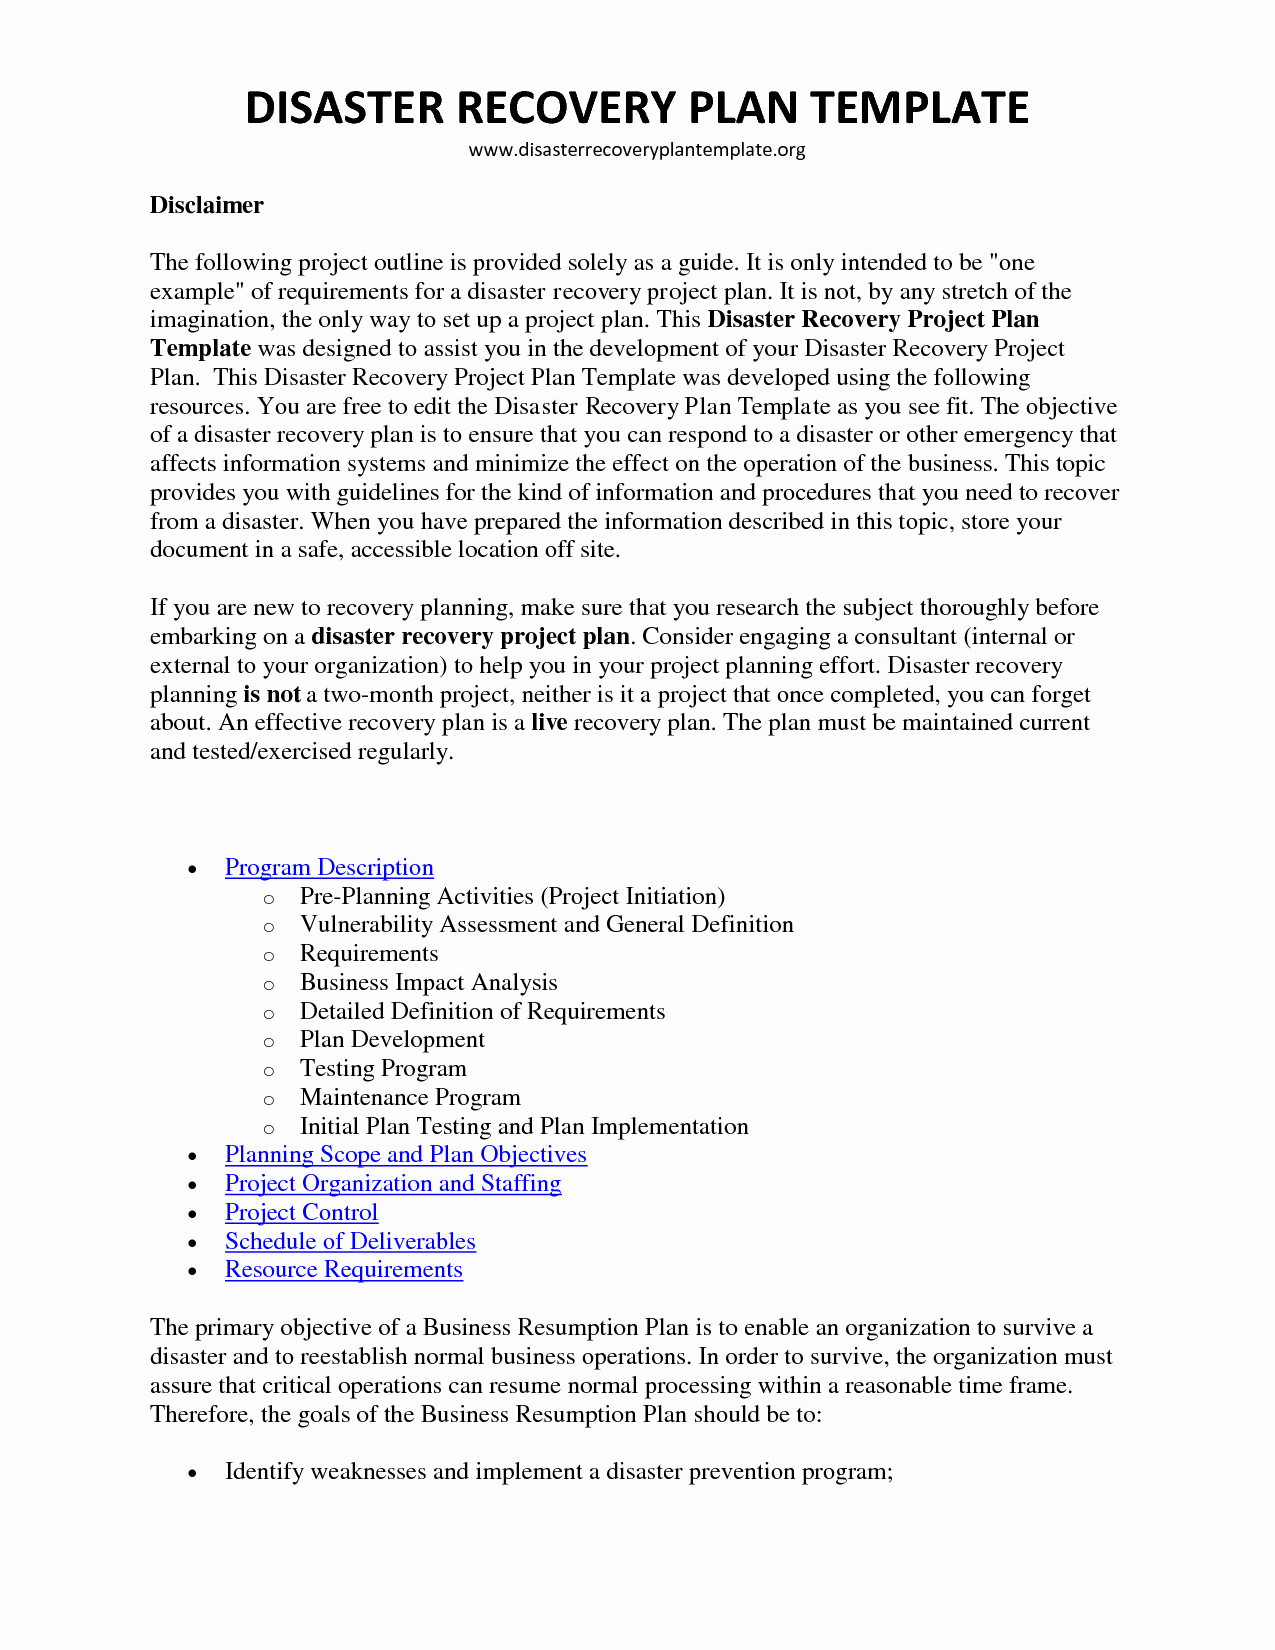 Sample Disaster Recovery Plan Template Inspirational Disaster Recovery Plan Template